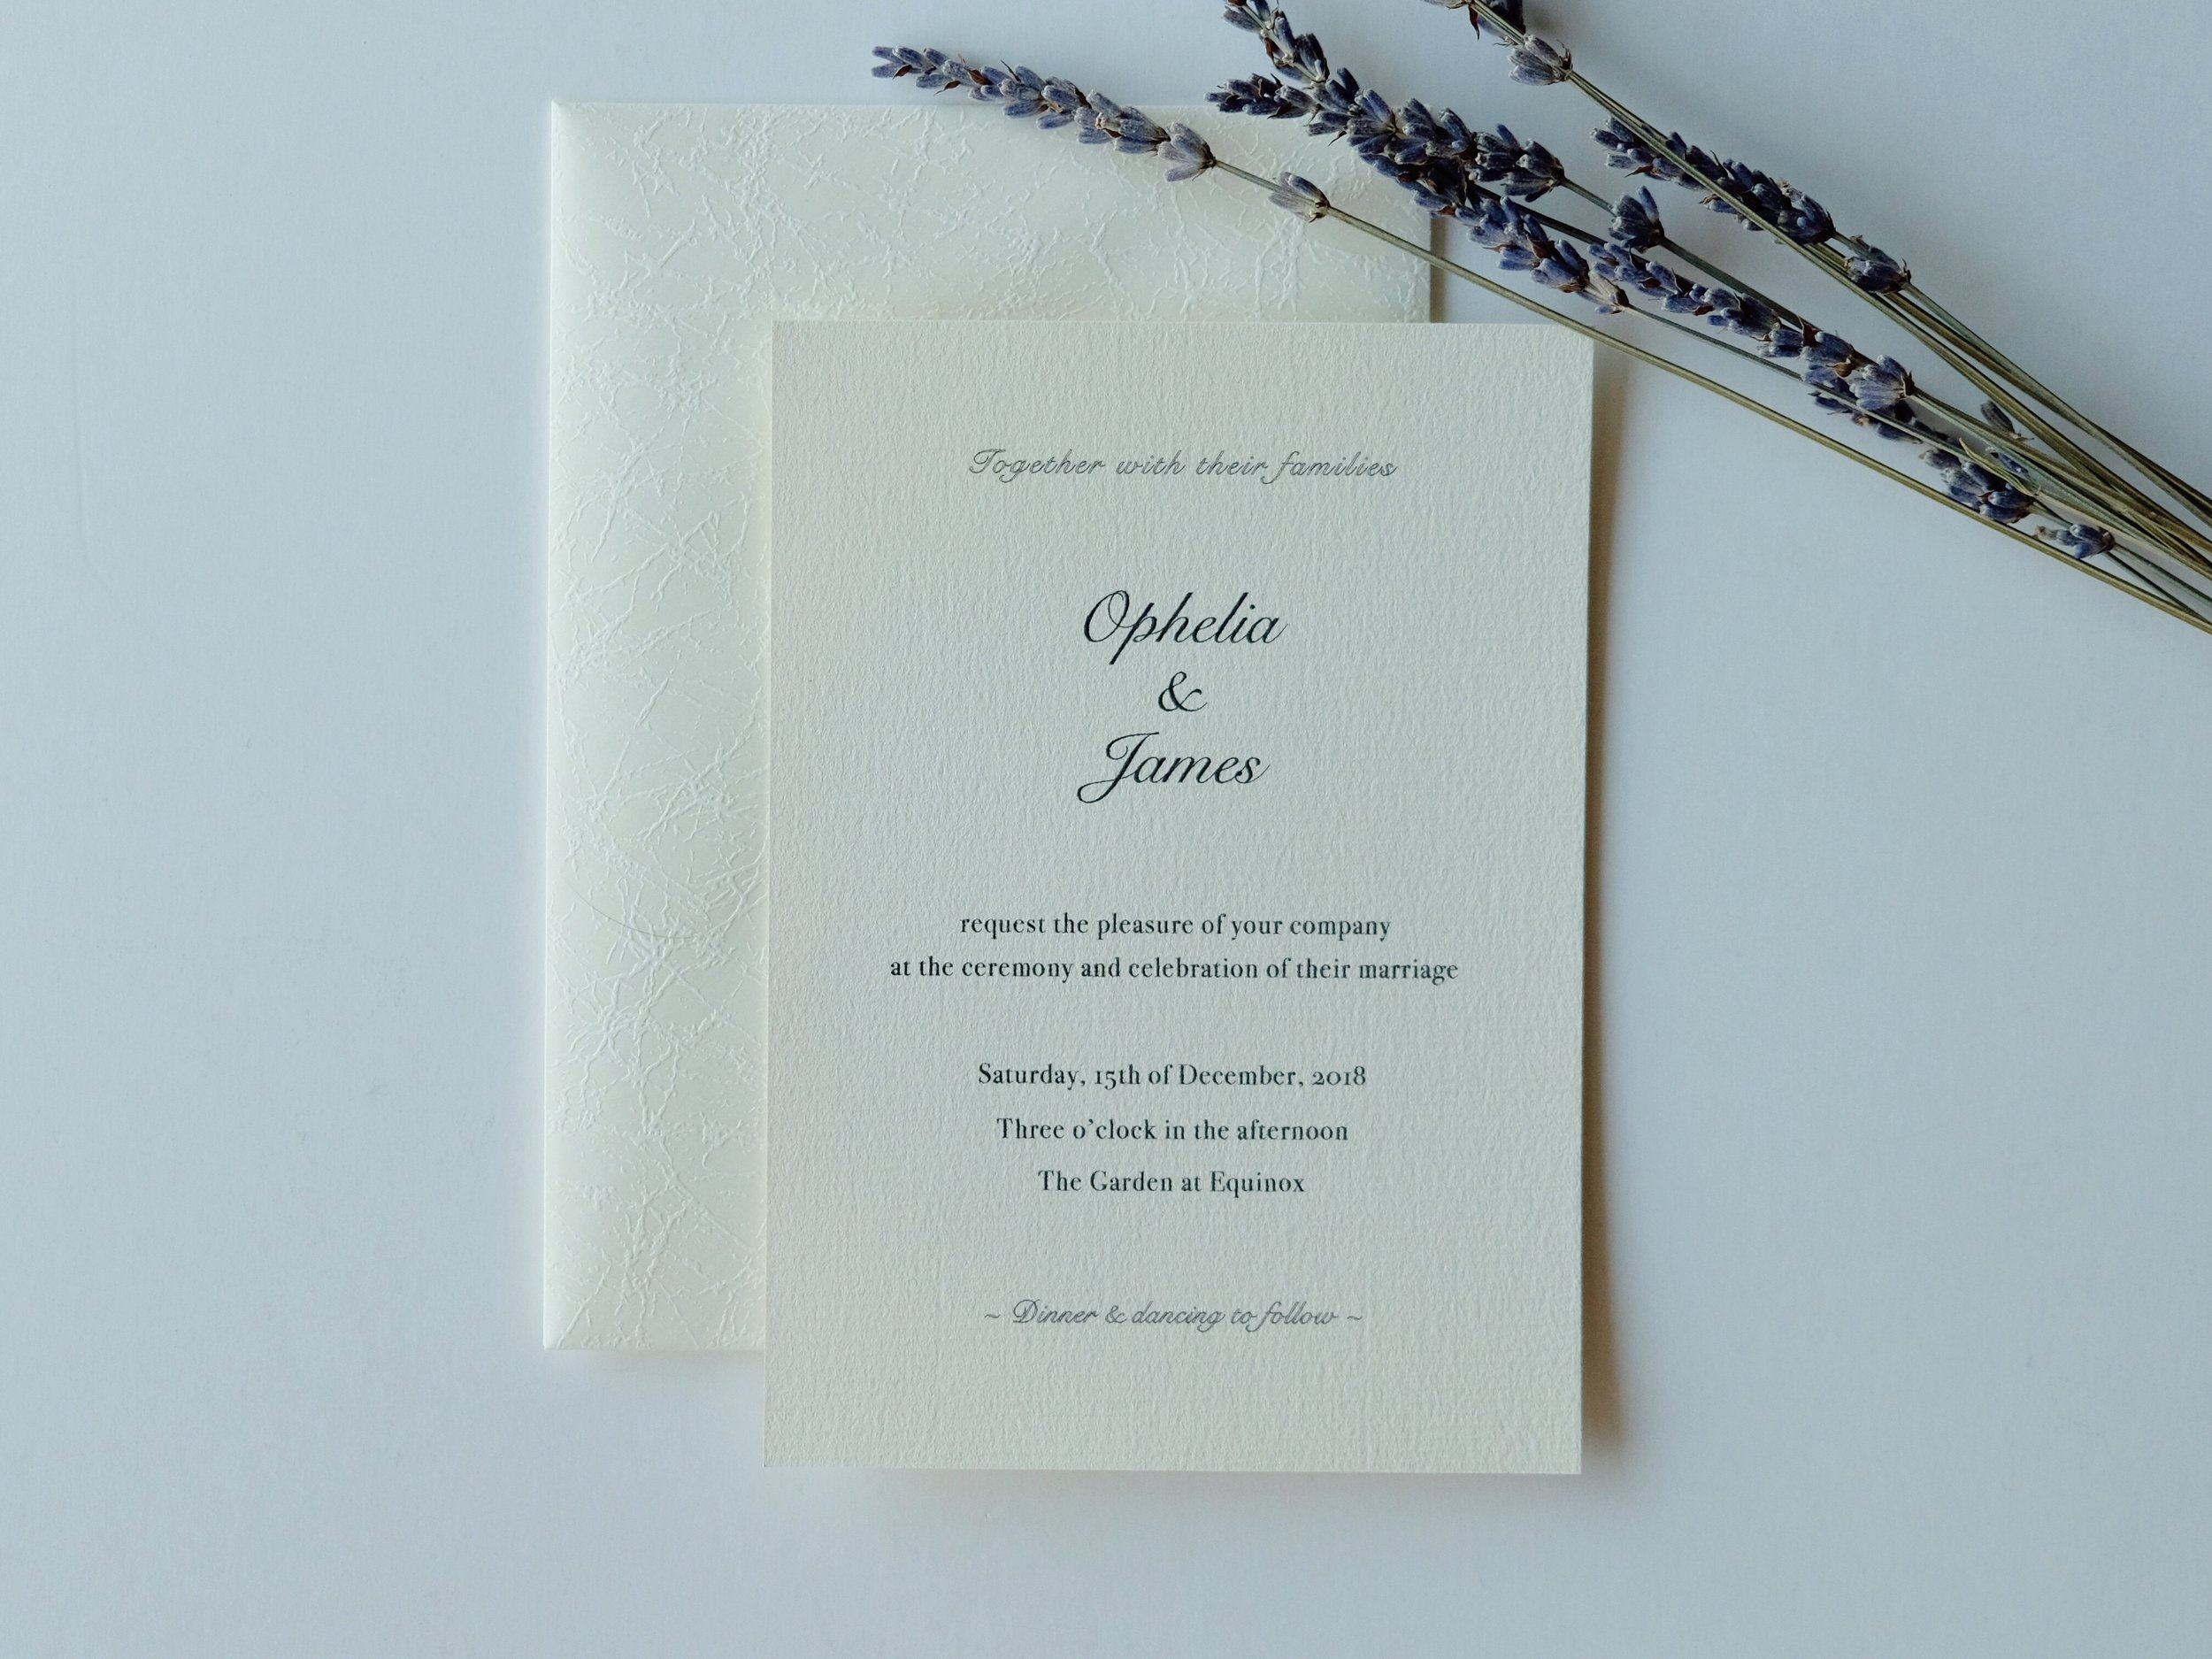 I DIY-ed my own wedding invitations and you probably wouldn't be able to tell